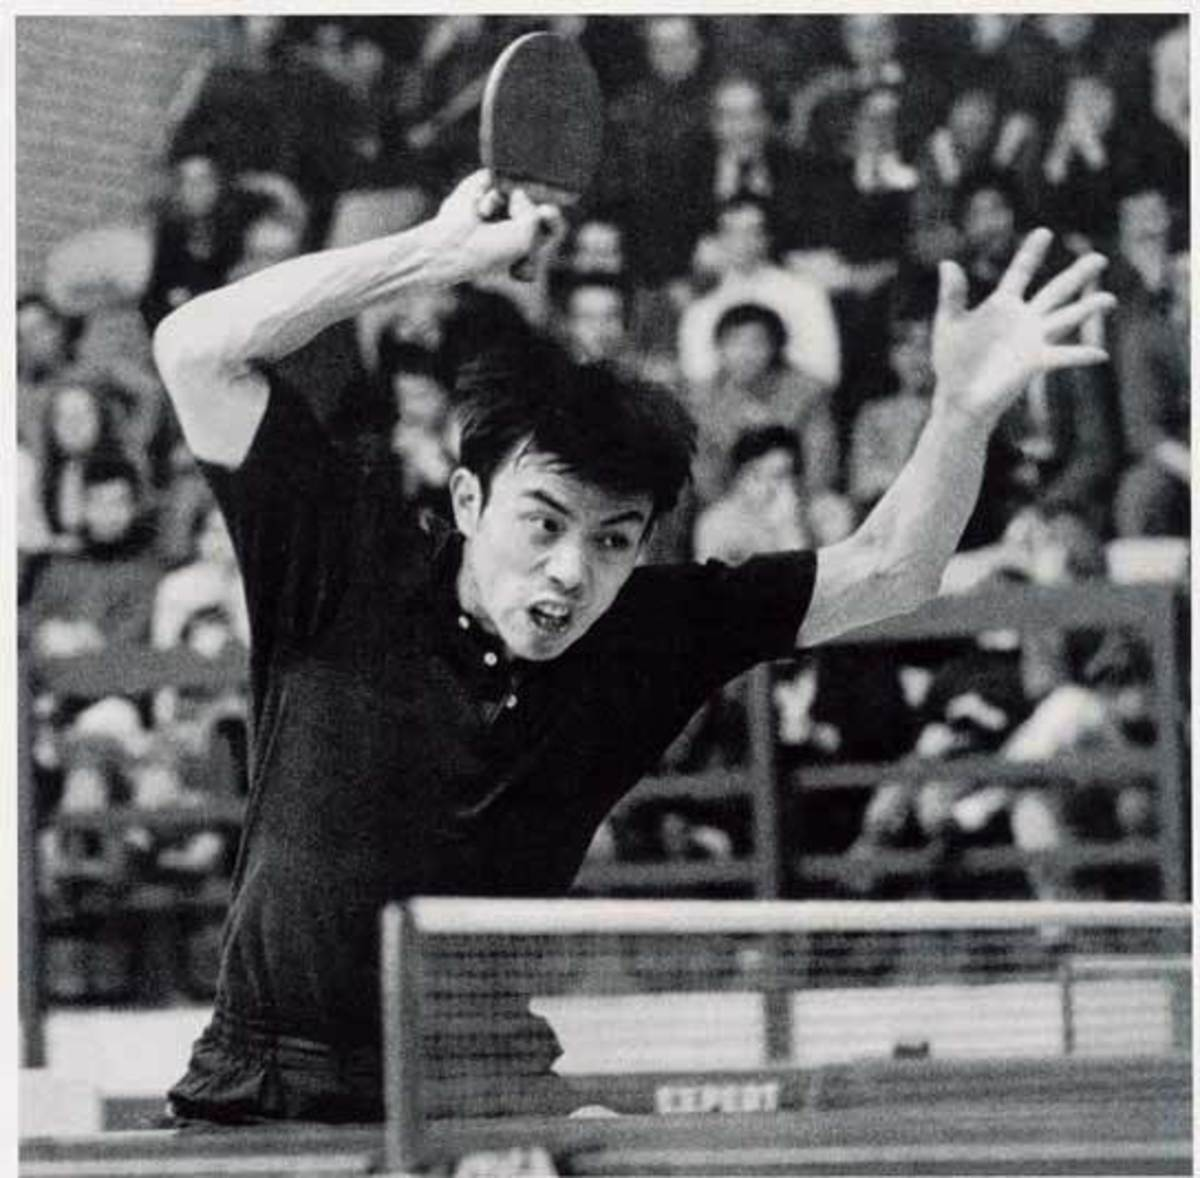 Li Furong, one of the best Chinese table tennis players - You won't want to mess with him! - Ping Pong and Table Tennis Difference, History, Fun Facts